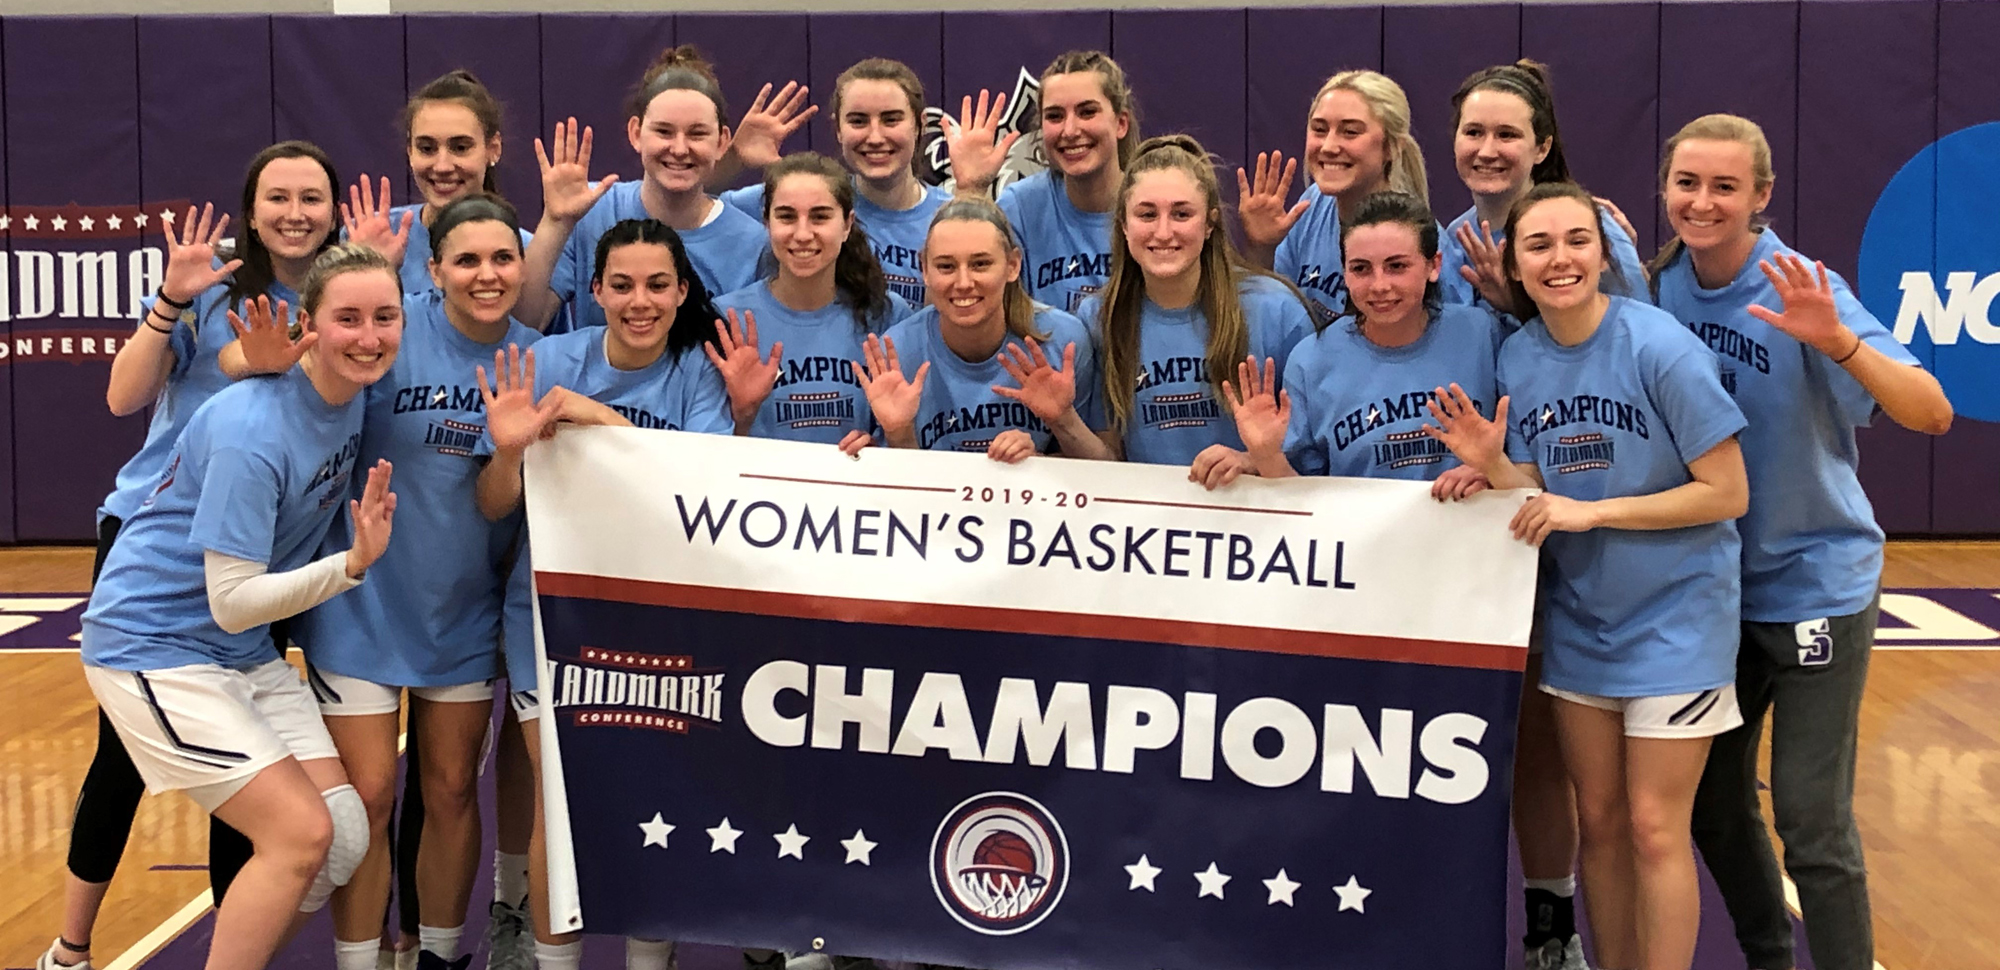 The Lady Royals captured the program's fifth straight Landmark Conference Championship with a 63-42 victory over Catholic on Saturday afternoon.